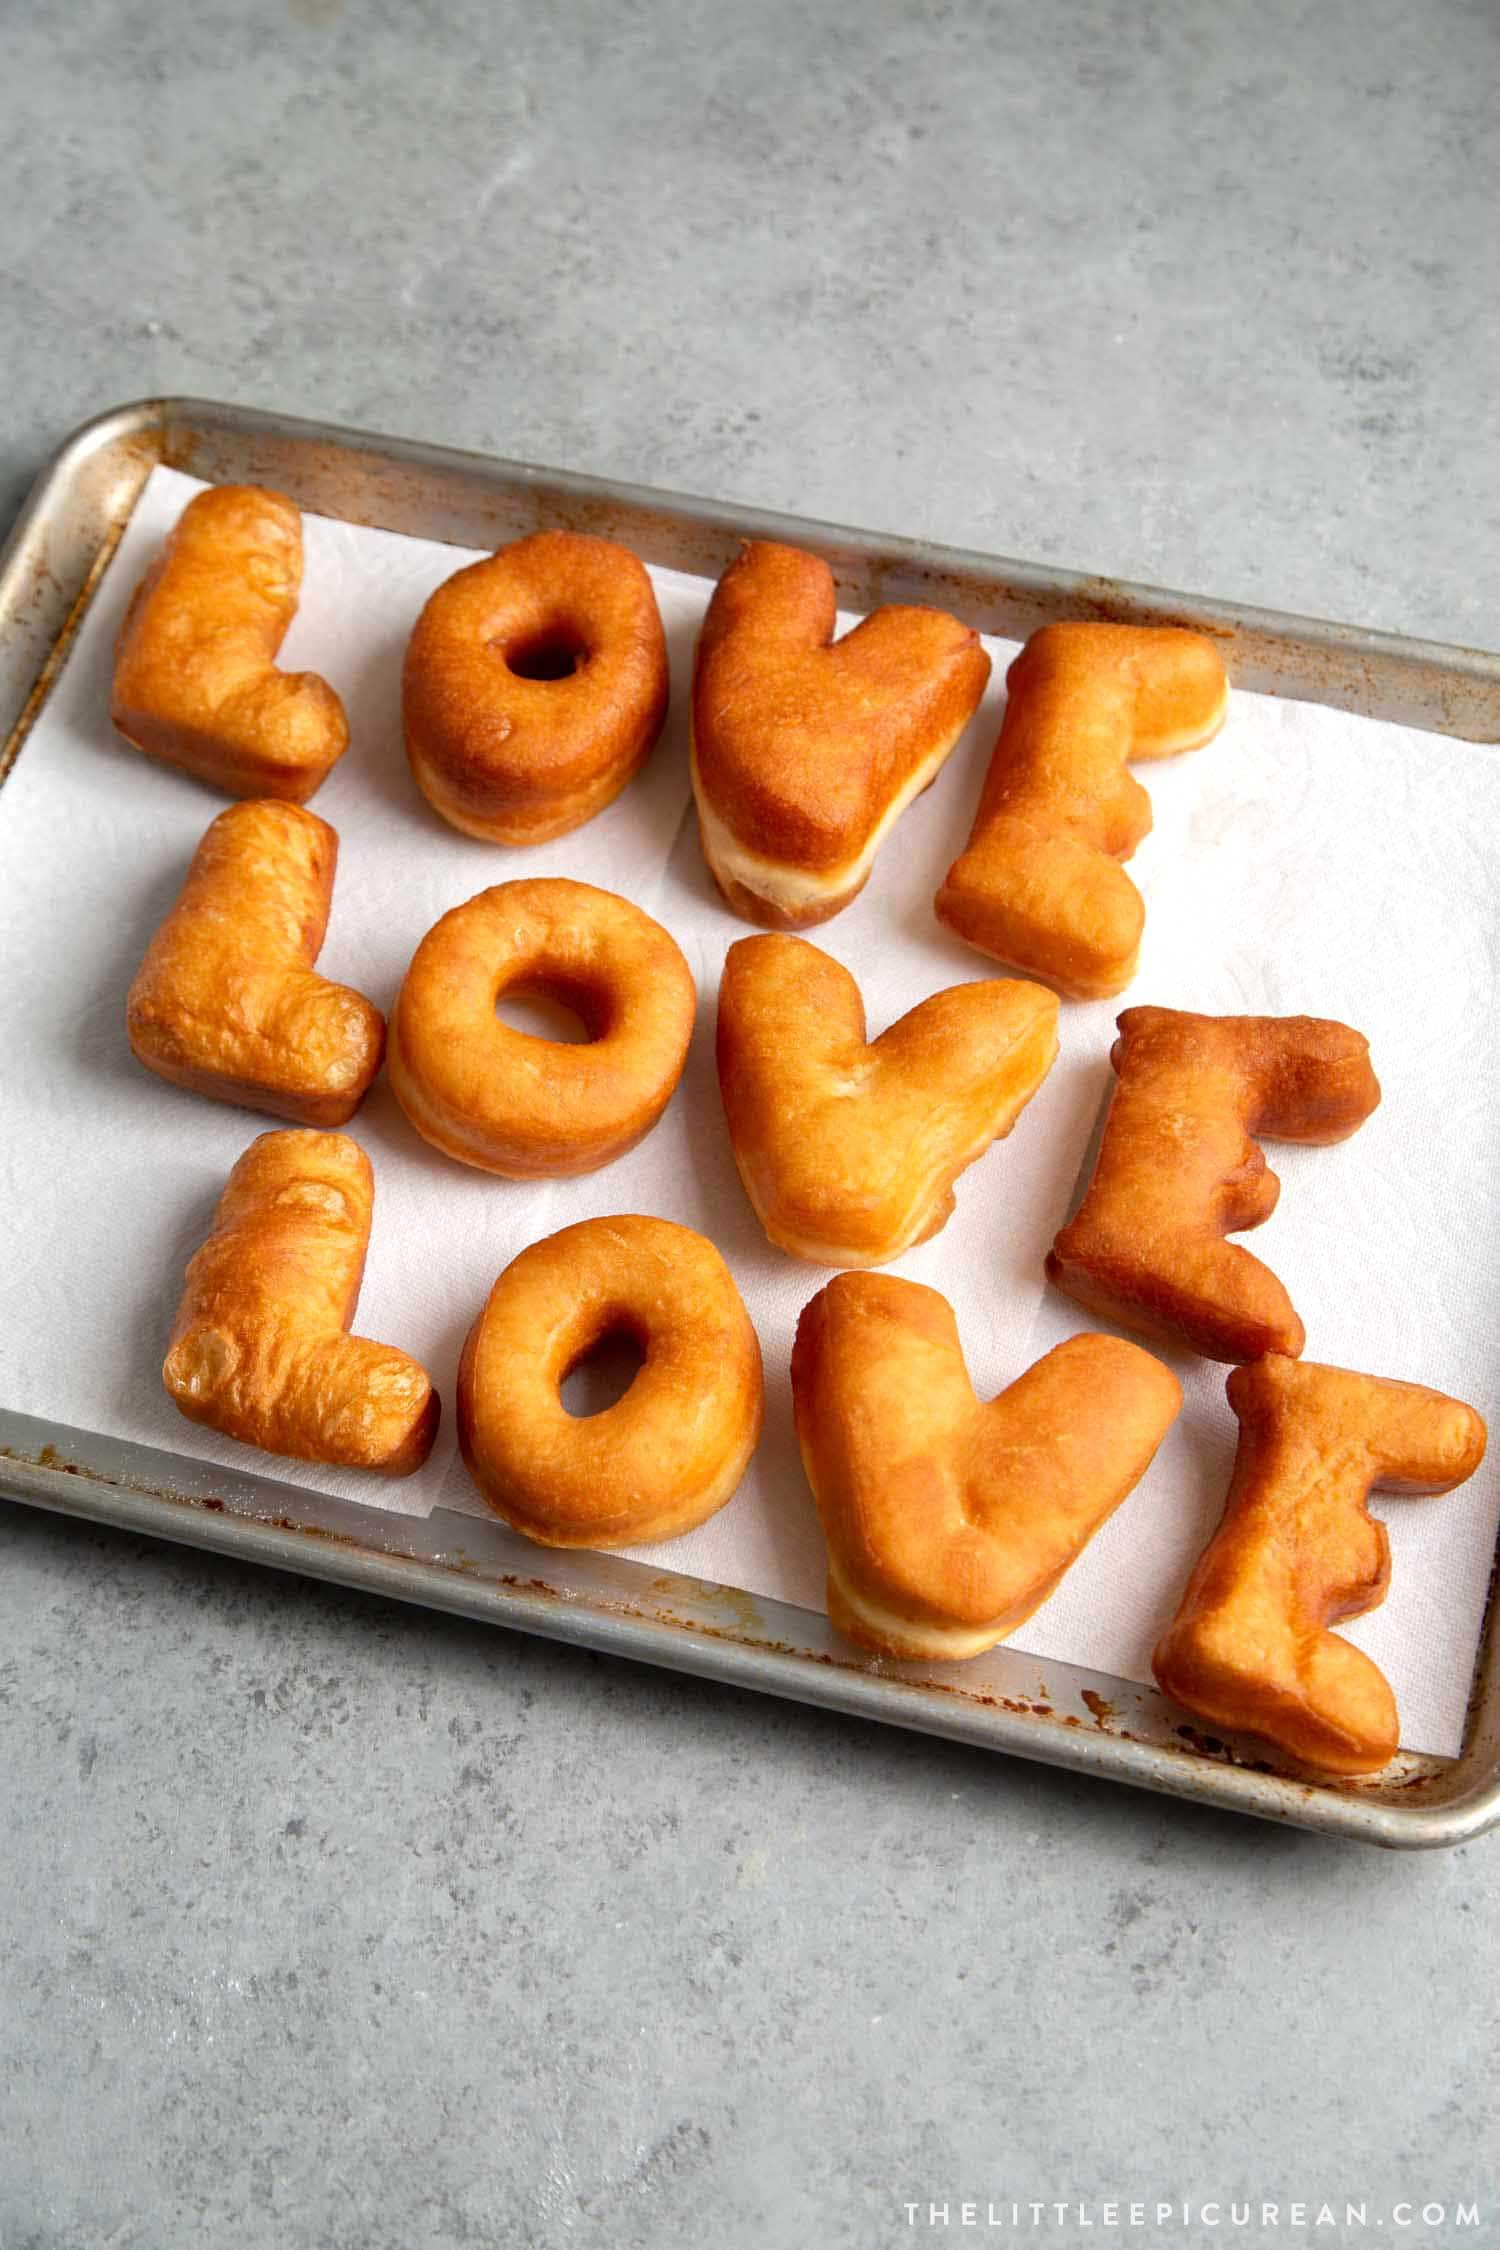 DIY Donut Letters. These yeast donuts are made to spell LOVE, but you can create whatever message you want!